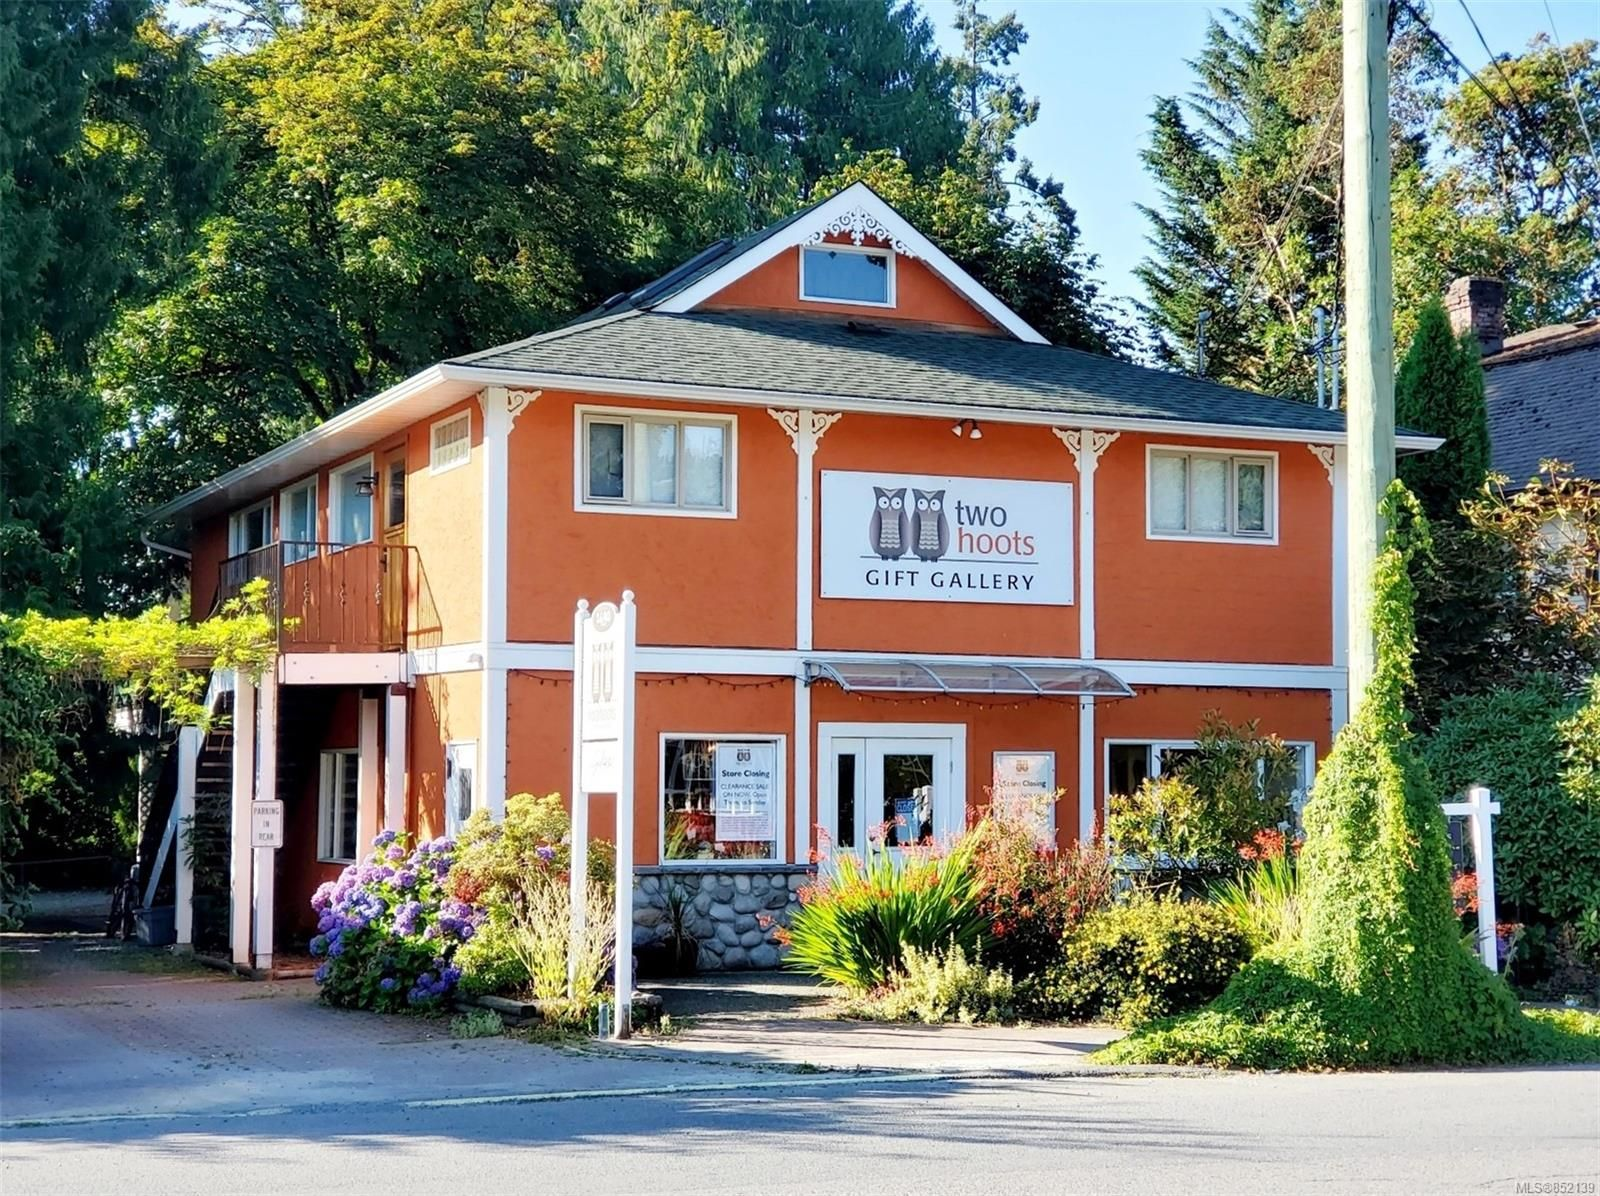 Main Photo: 1490 Fisher Rd in : ML Cobble Hill Mixed Use for sale (Malahat & Area)  : MLS®# 852139